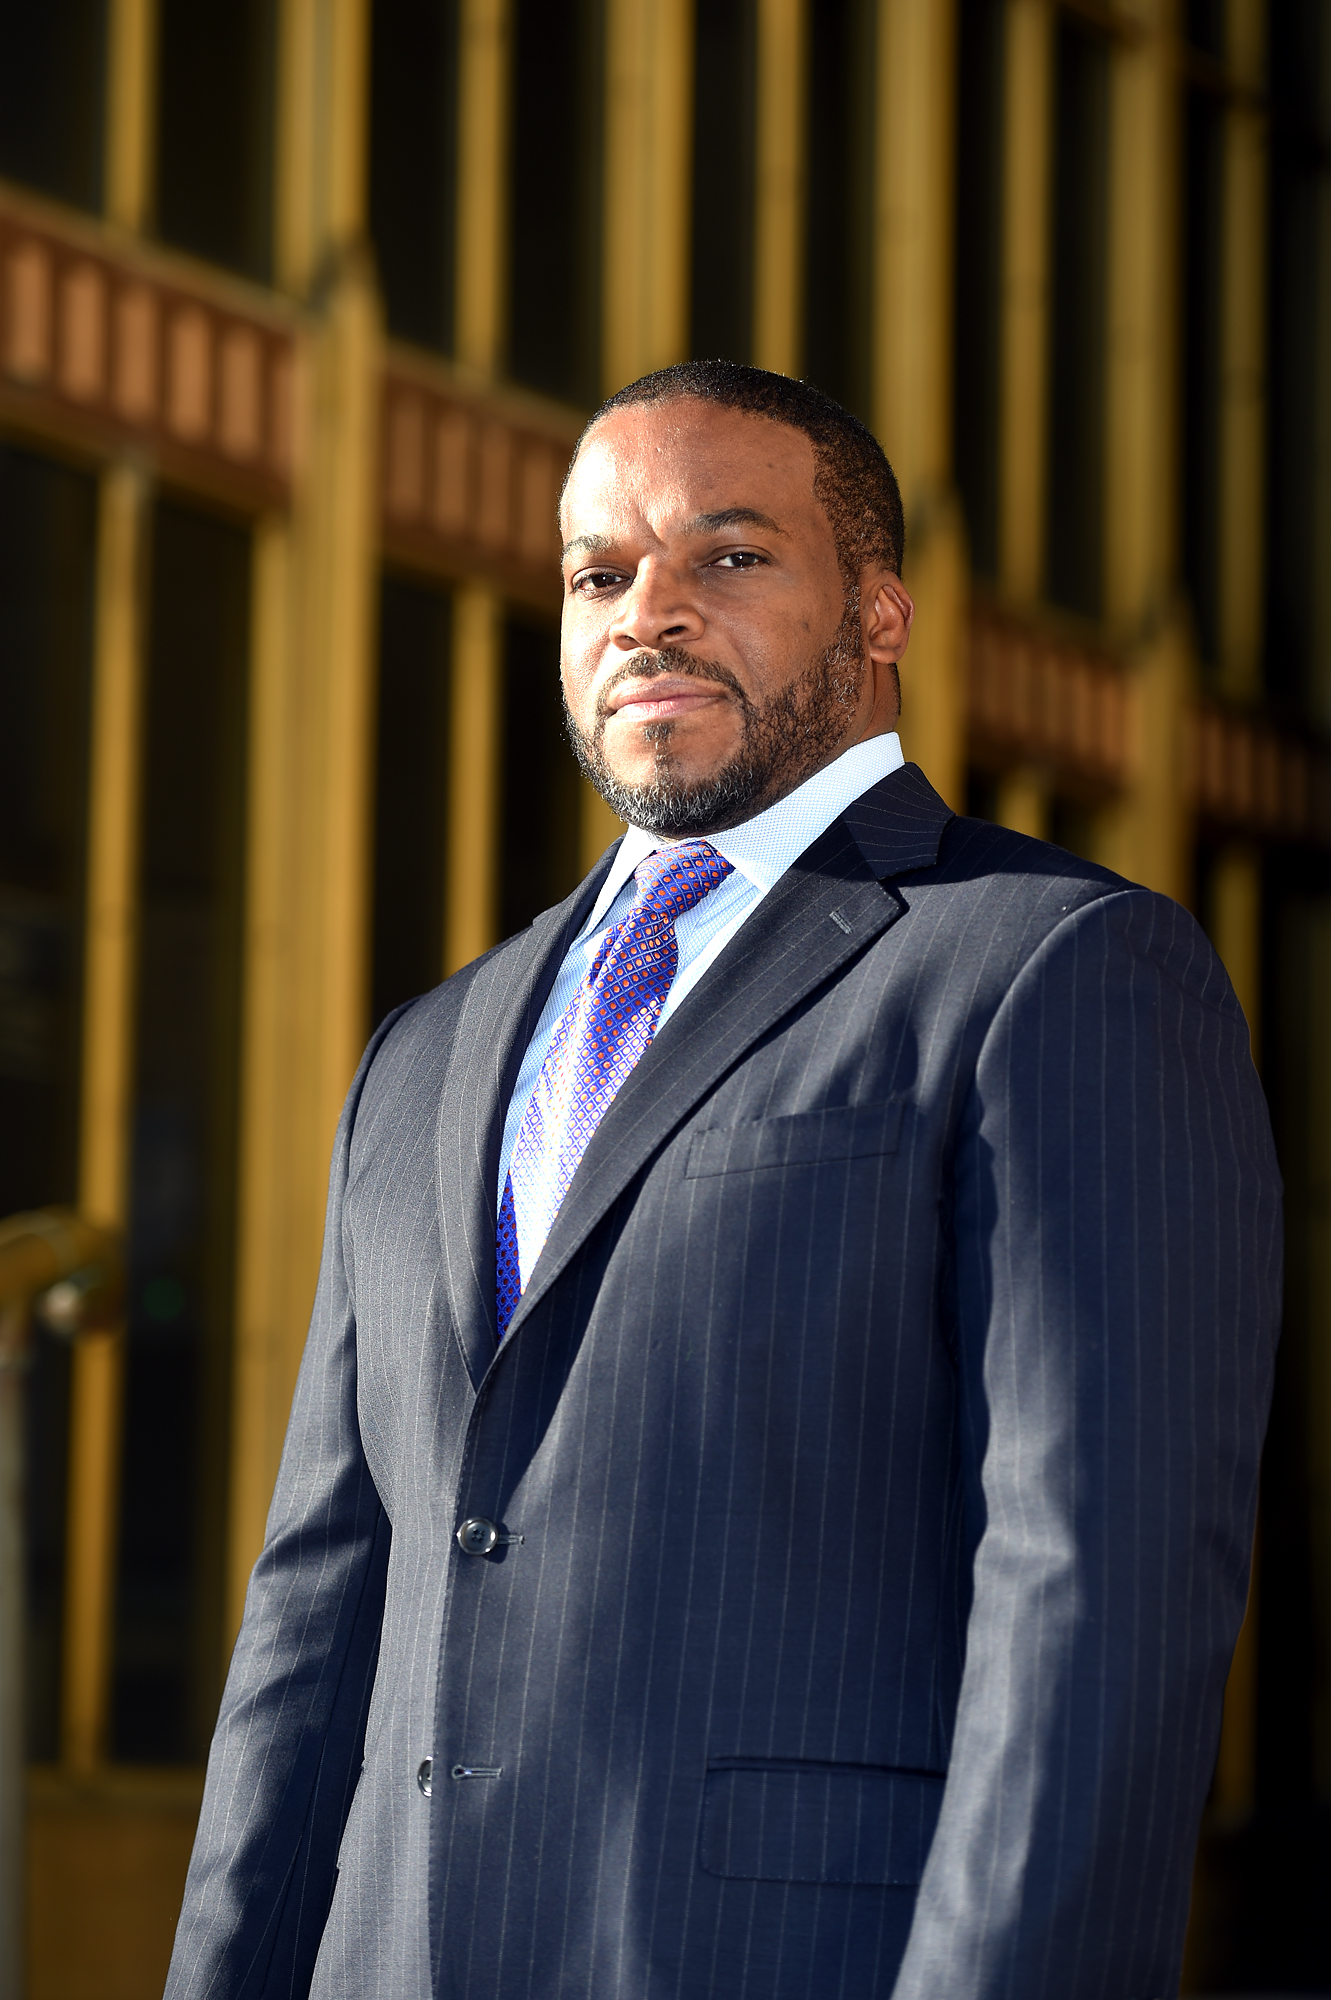 Attorney Eric Guster: The Business of Building a Brand | The